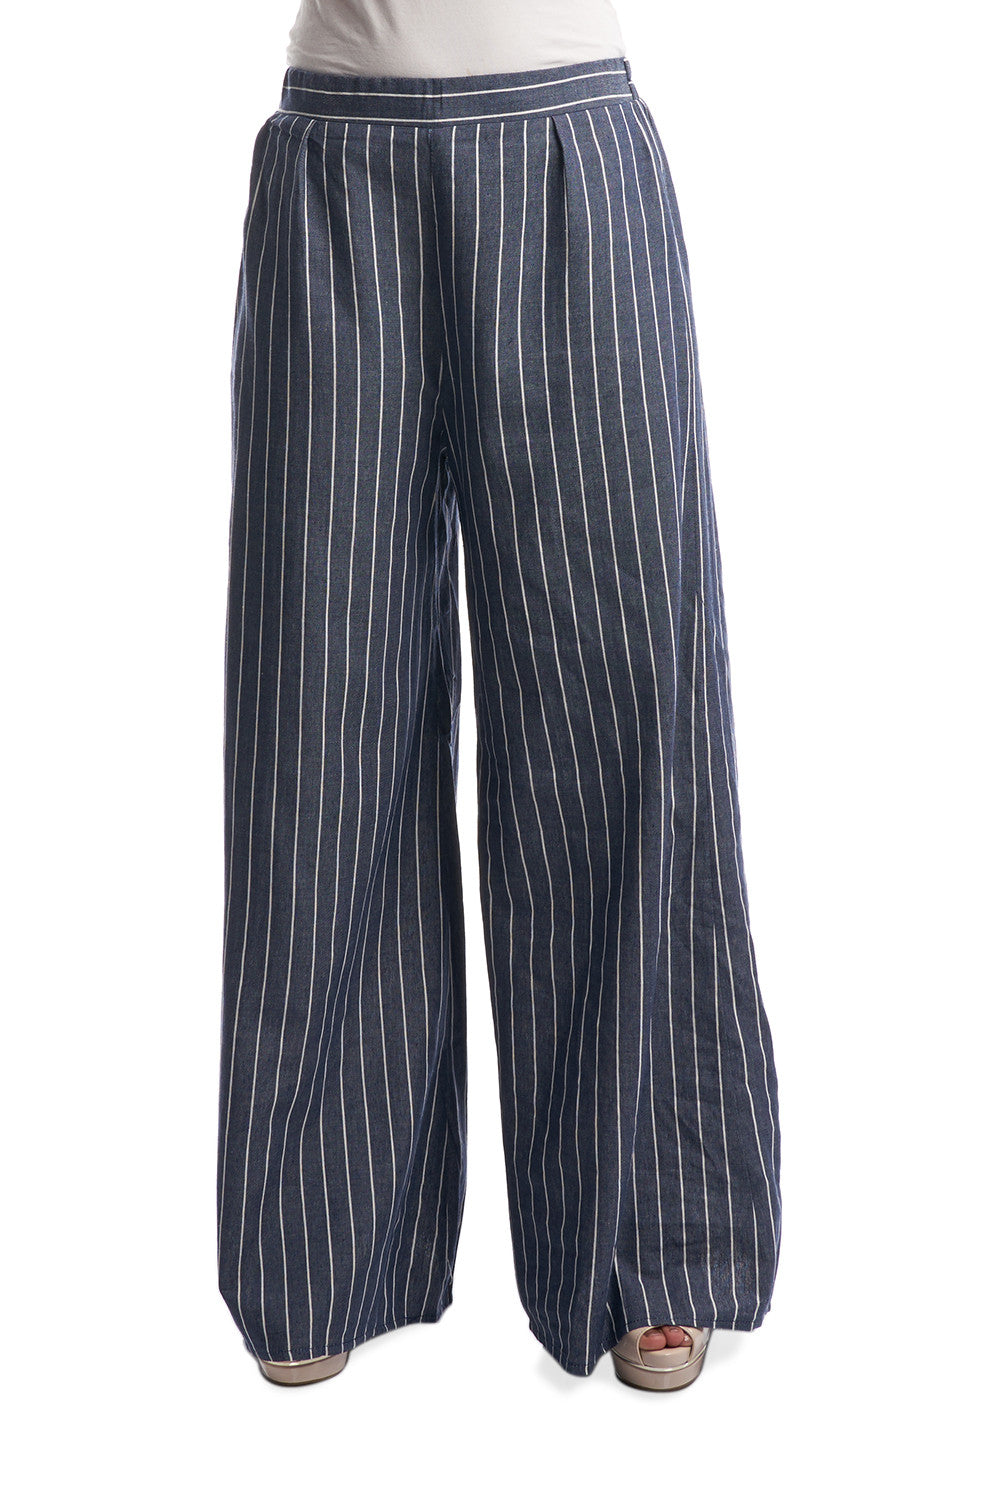 Striped Palazzo Pants in Blue